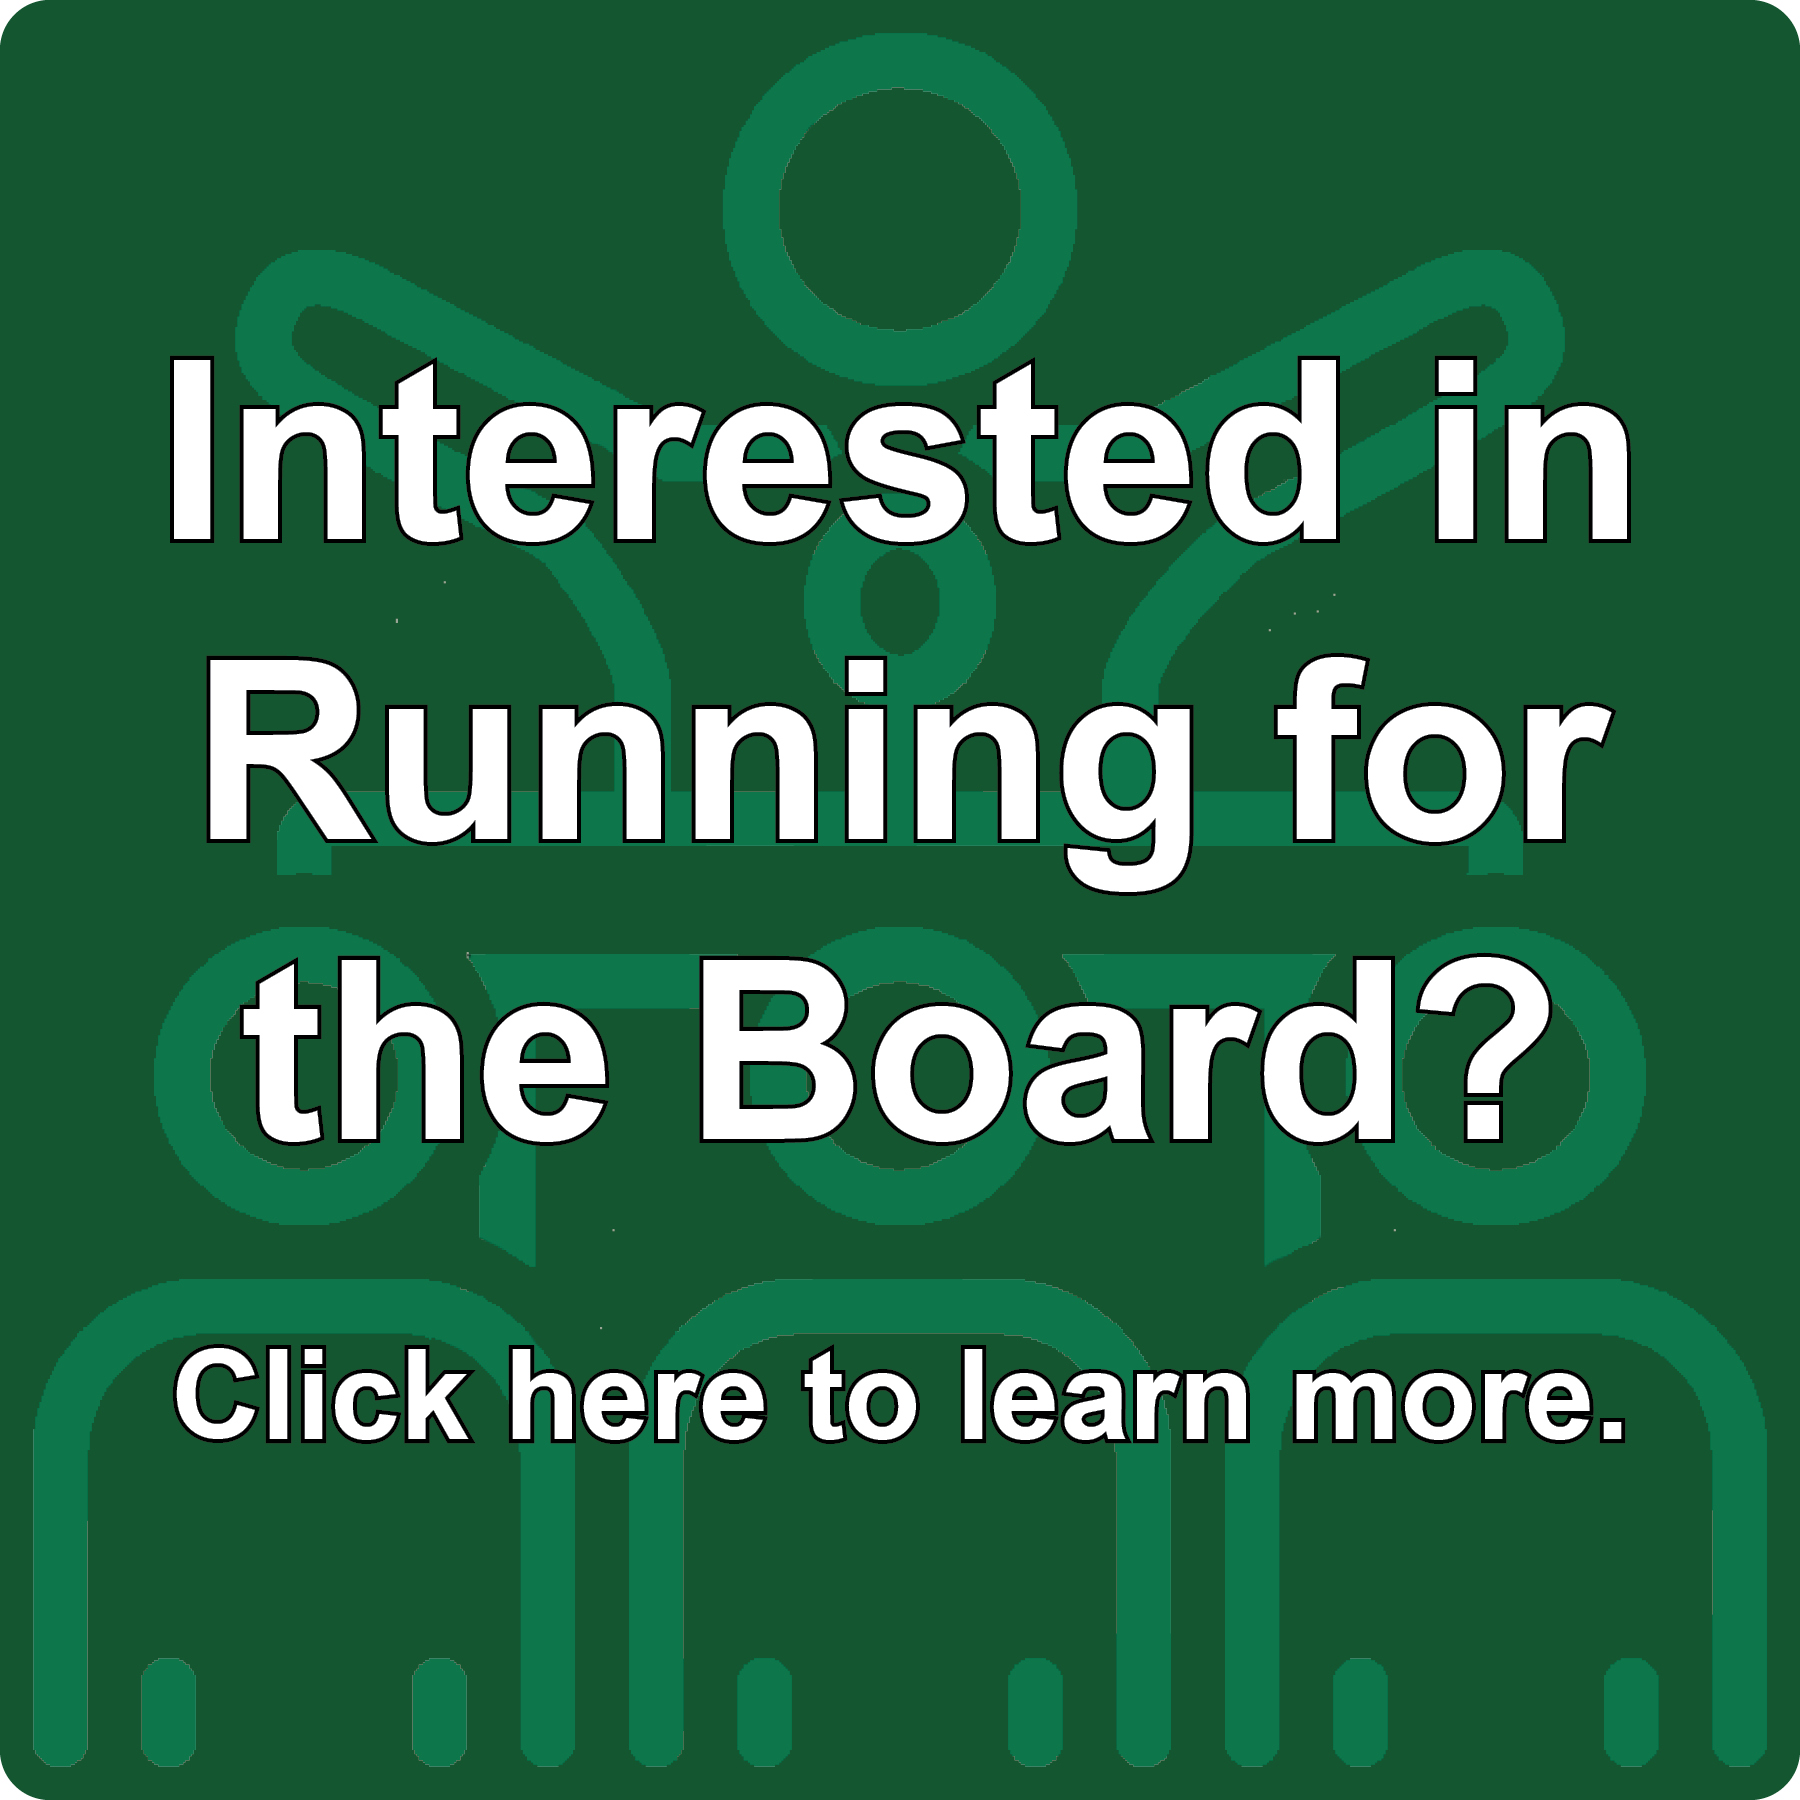 Link to information on running for the board